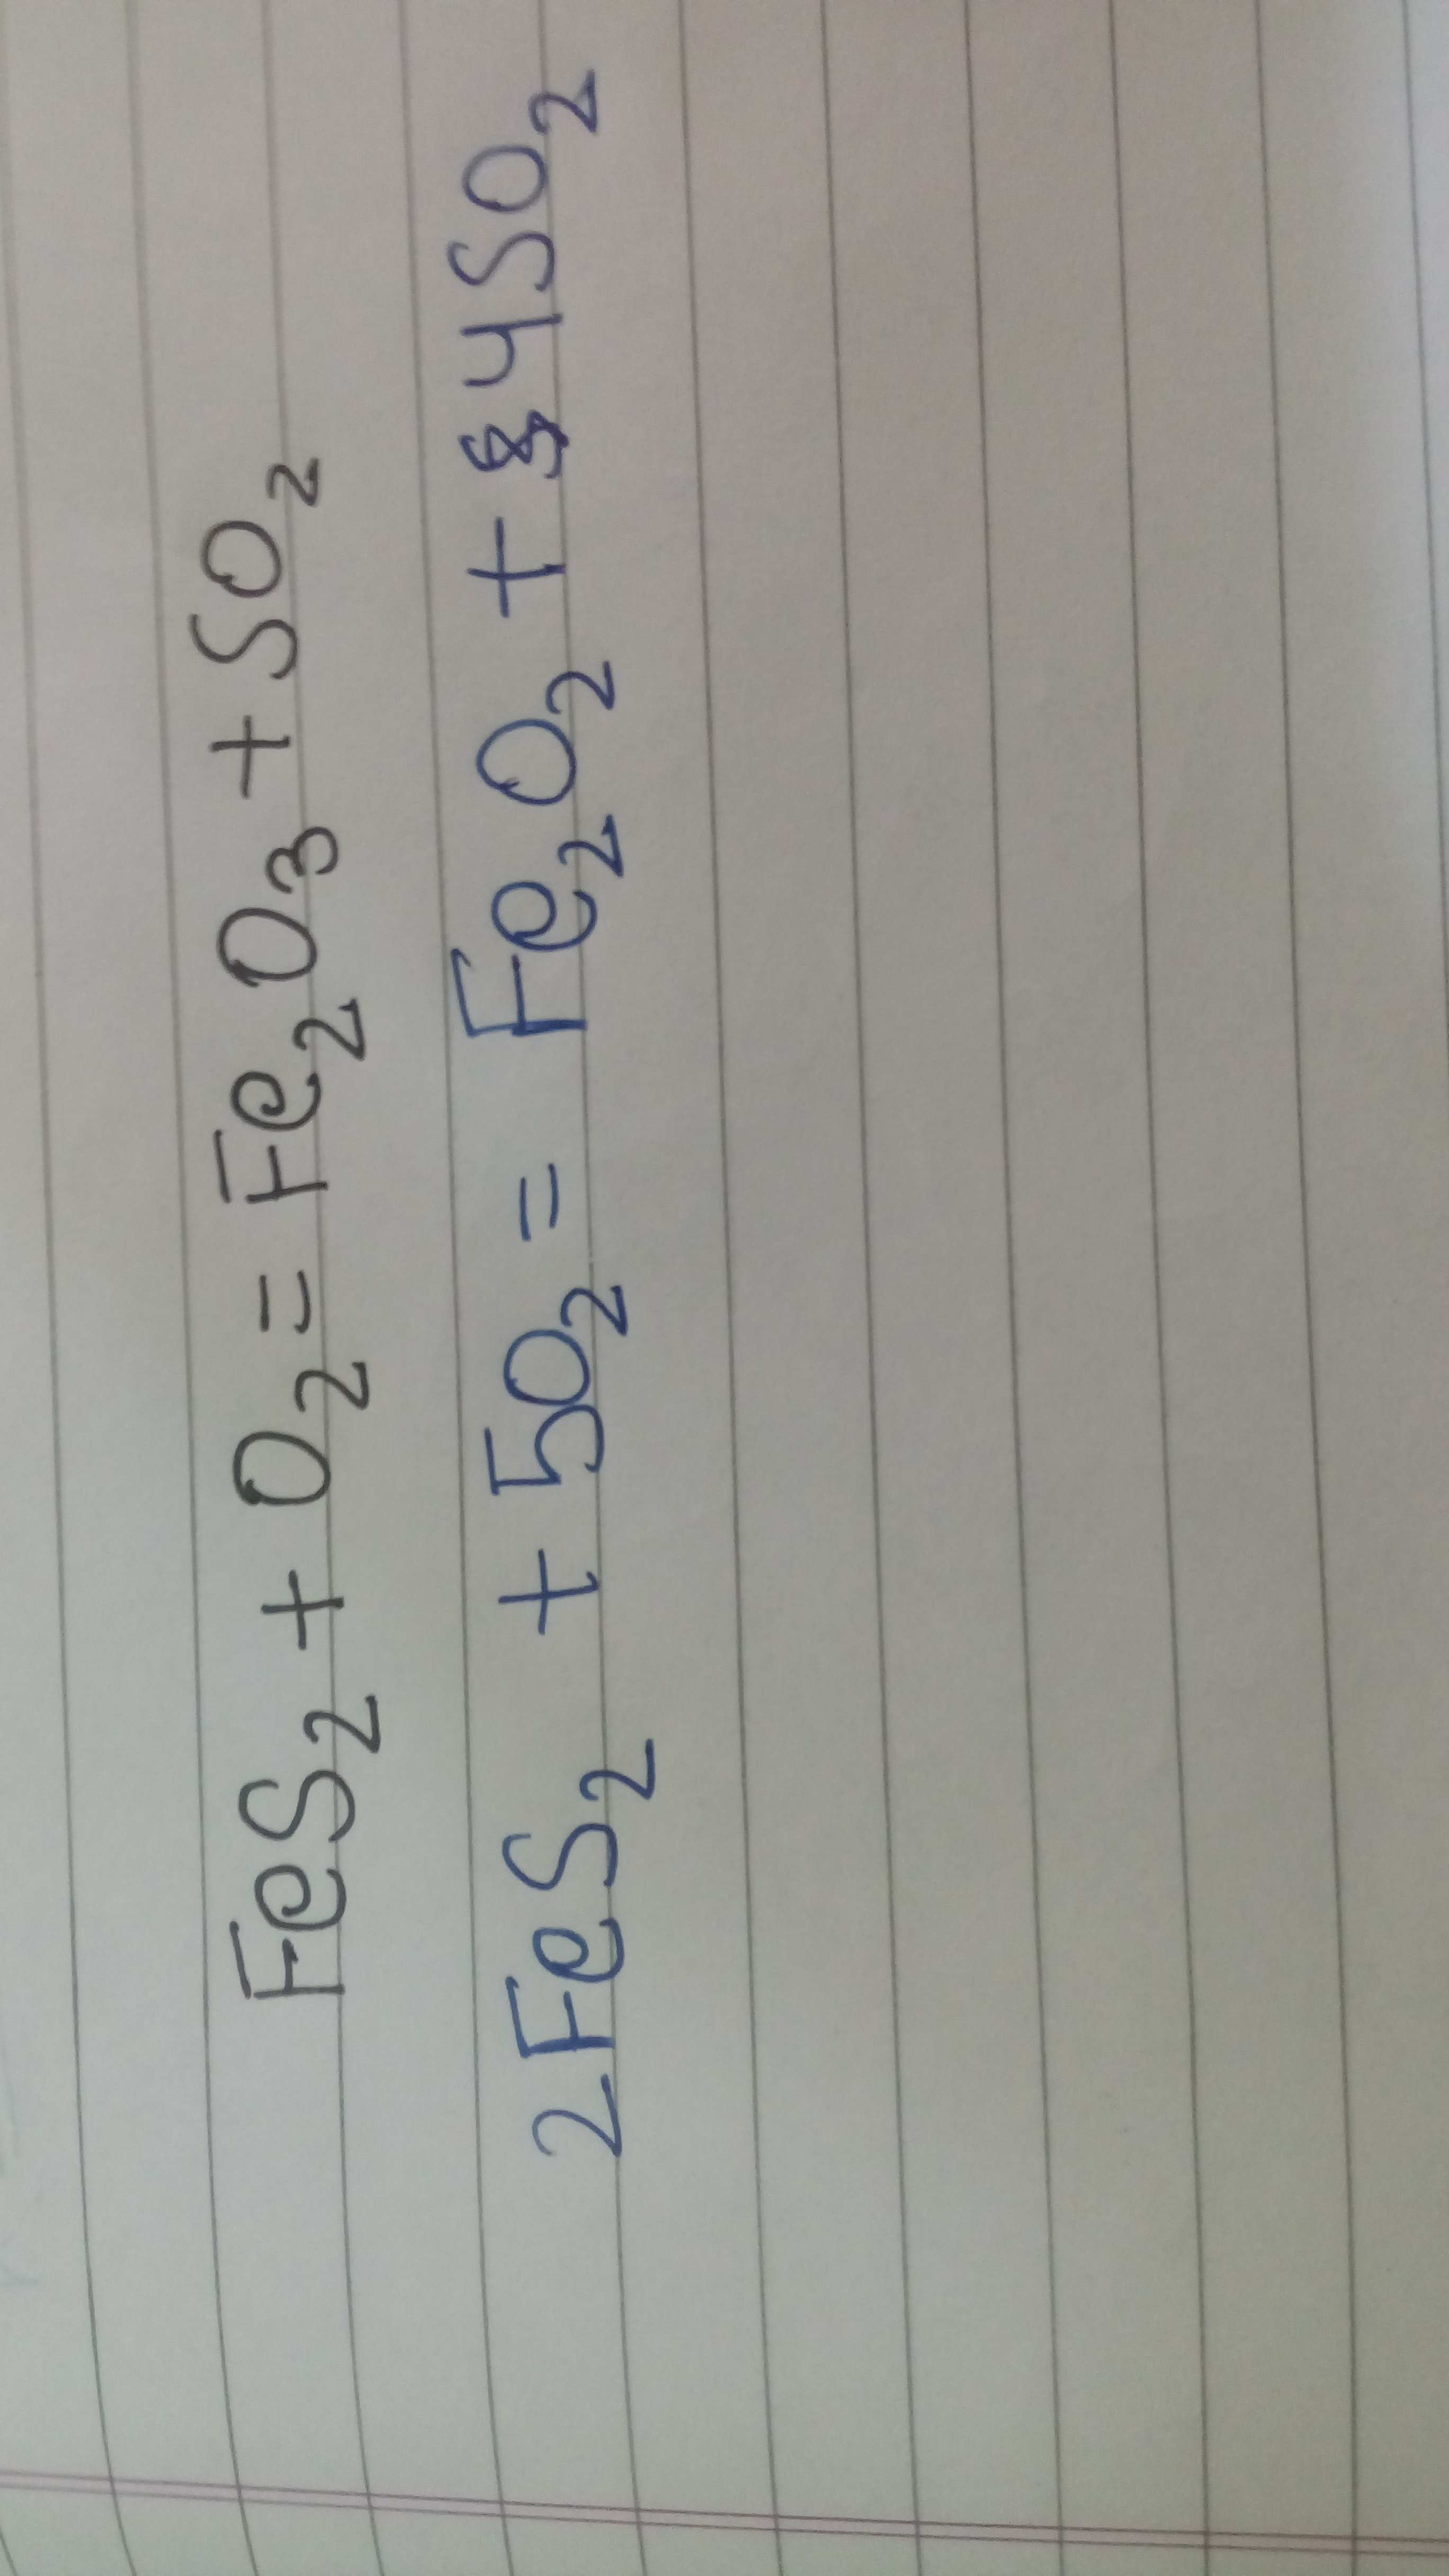 Balance this chemical equation . FeS2 + O2 → Fe2O3 + SO2 - Brainly.in